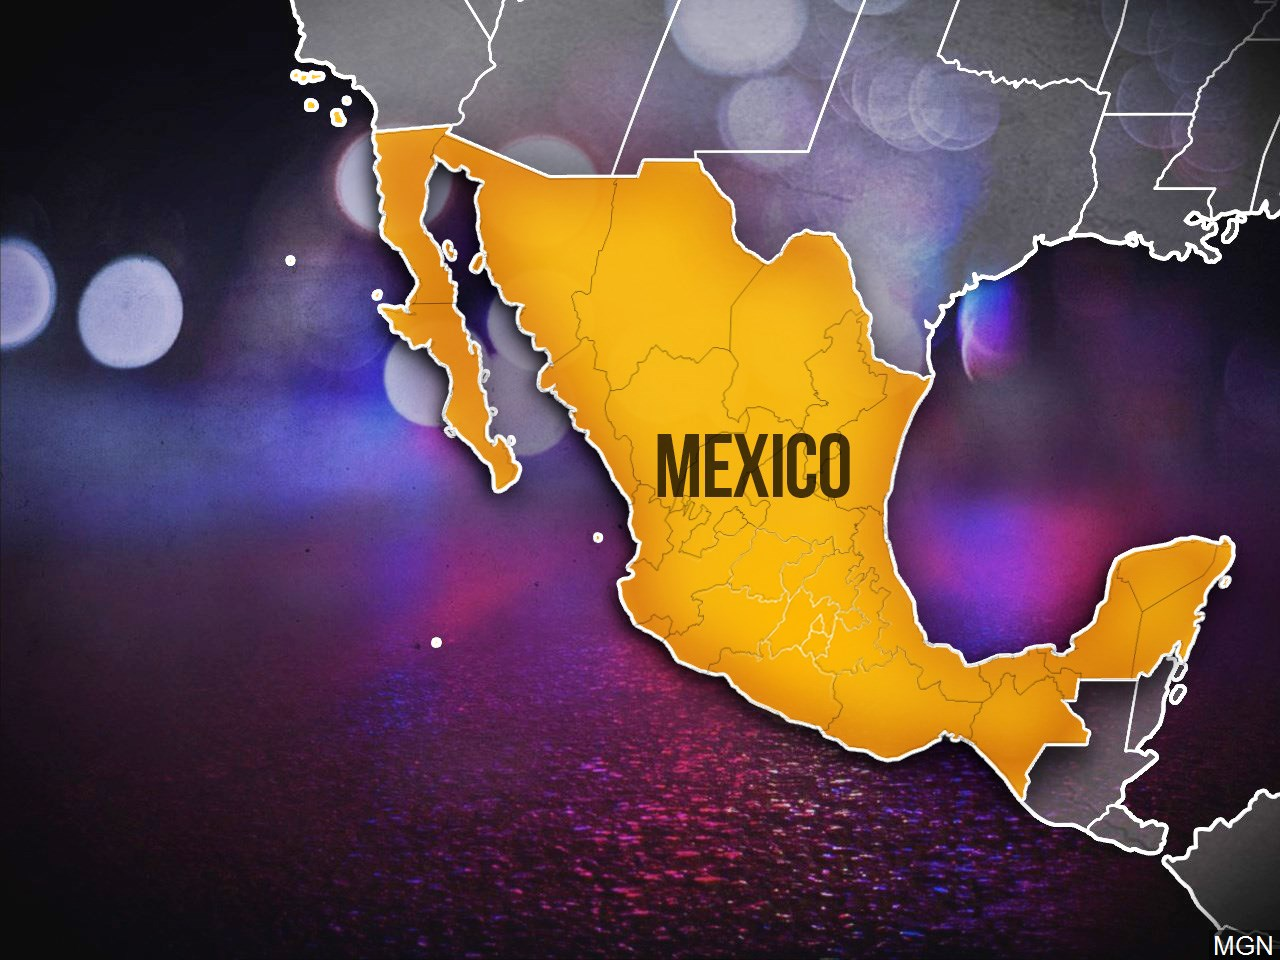 6 dead, 3 wounded in shooting at street party in Mexico City_1550432040344.jpg.jpg